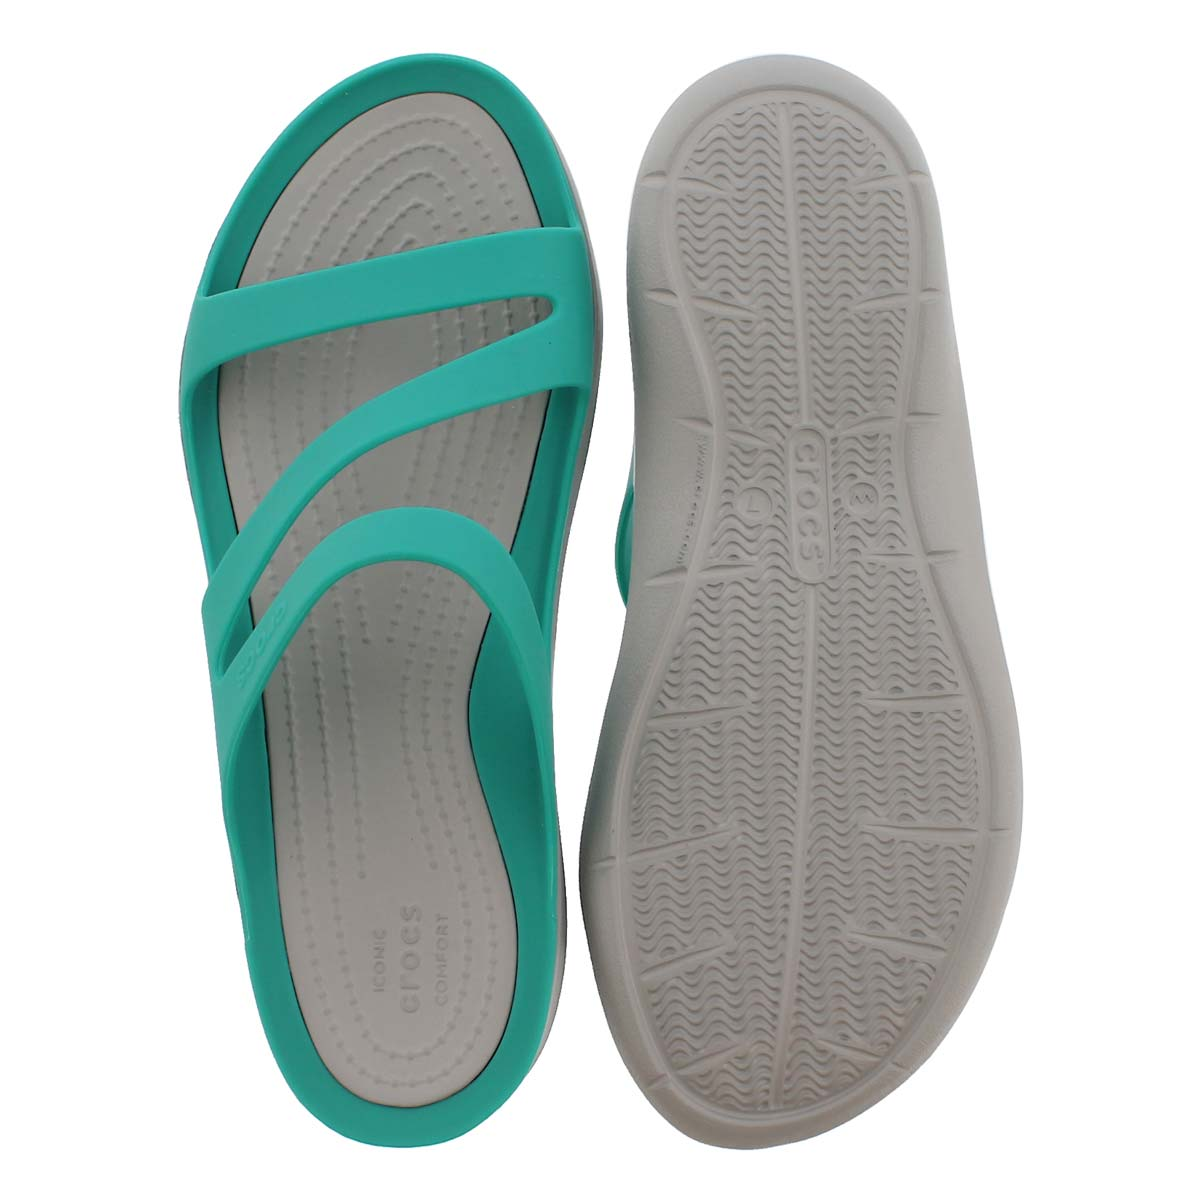 Women's SWIFTWATER tropical teal/grey sandals